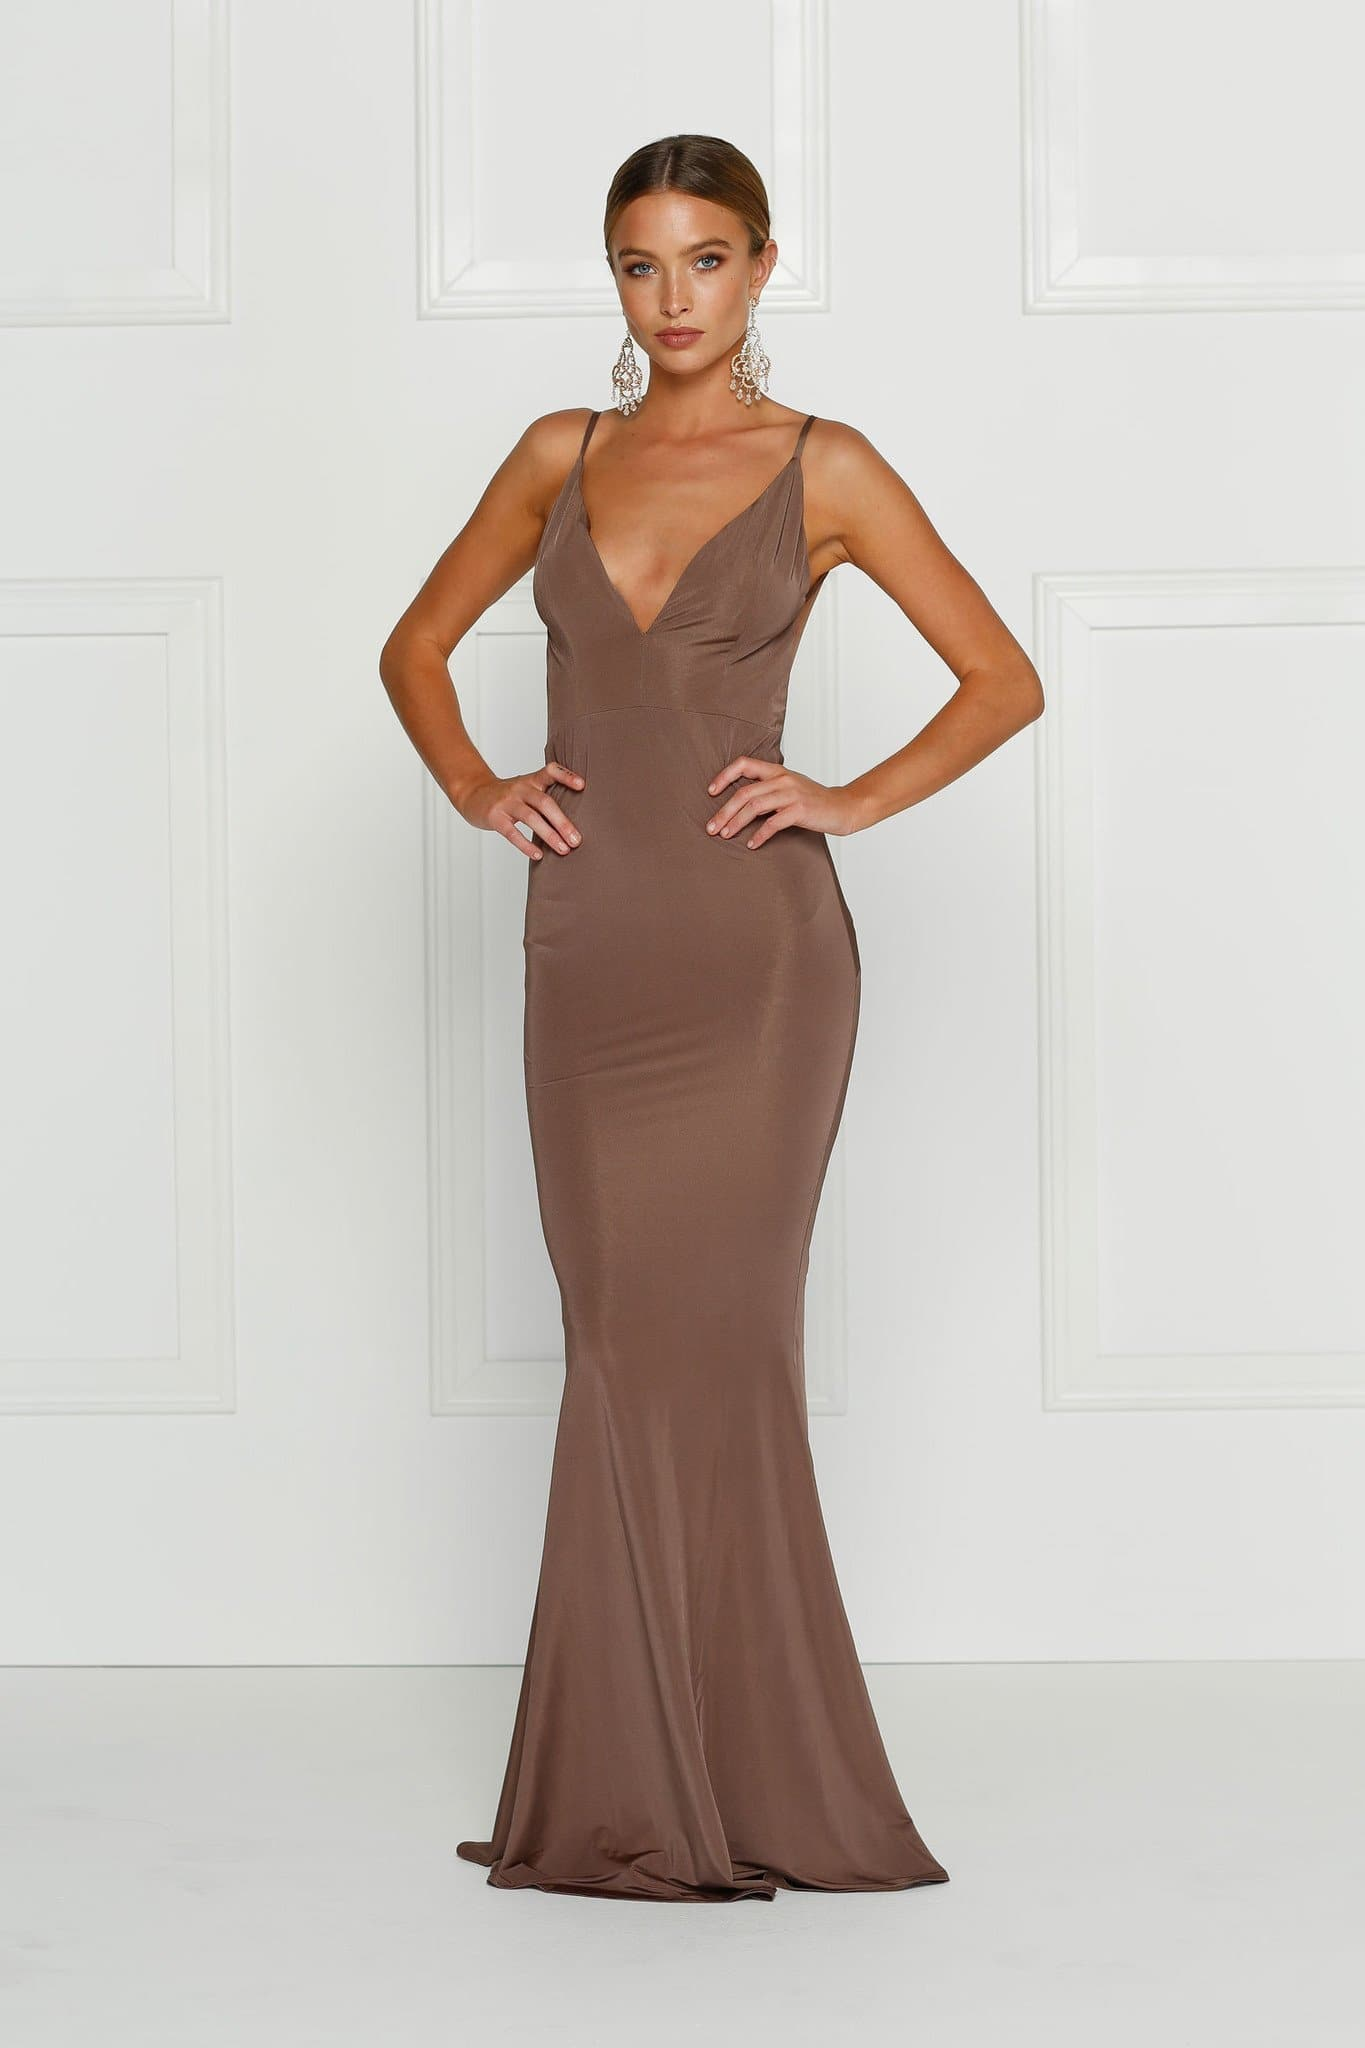 Penelope Luxe - Choco Brown Backless Dress with Back Knot Design